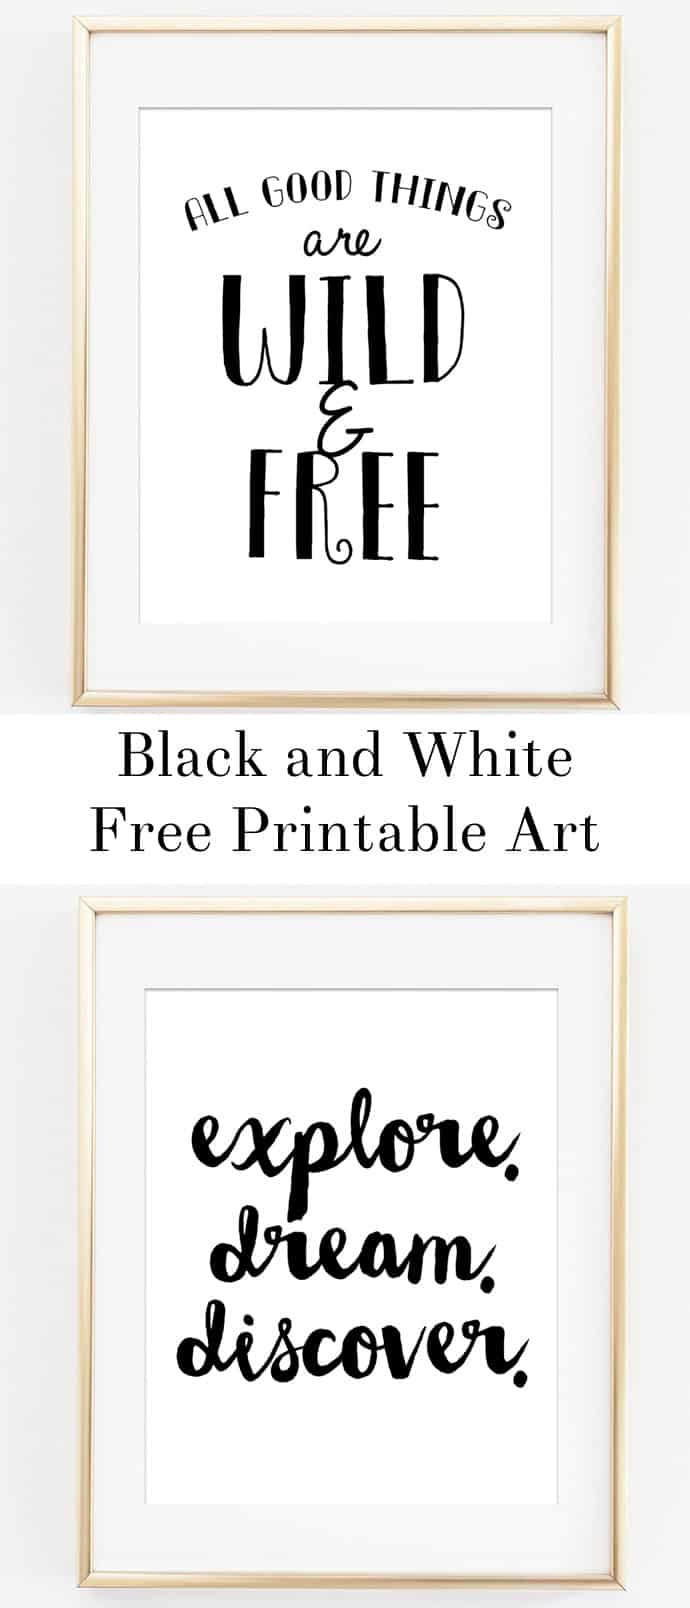 Omg these free printables are so cute! They would look awesome in a nursery or entryway. I love black and white free printable art like this as it goes with any decor in the house and would look amazing in any room!